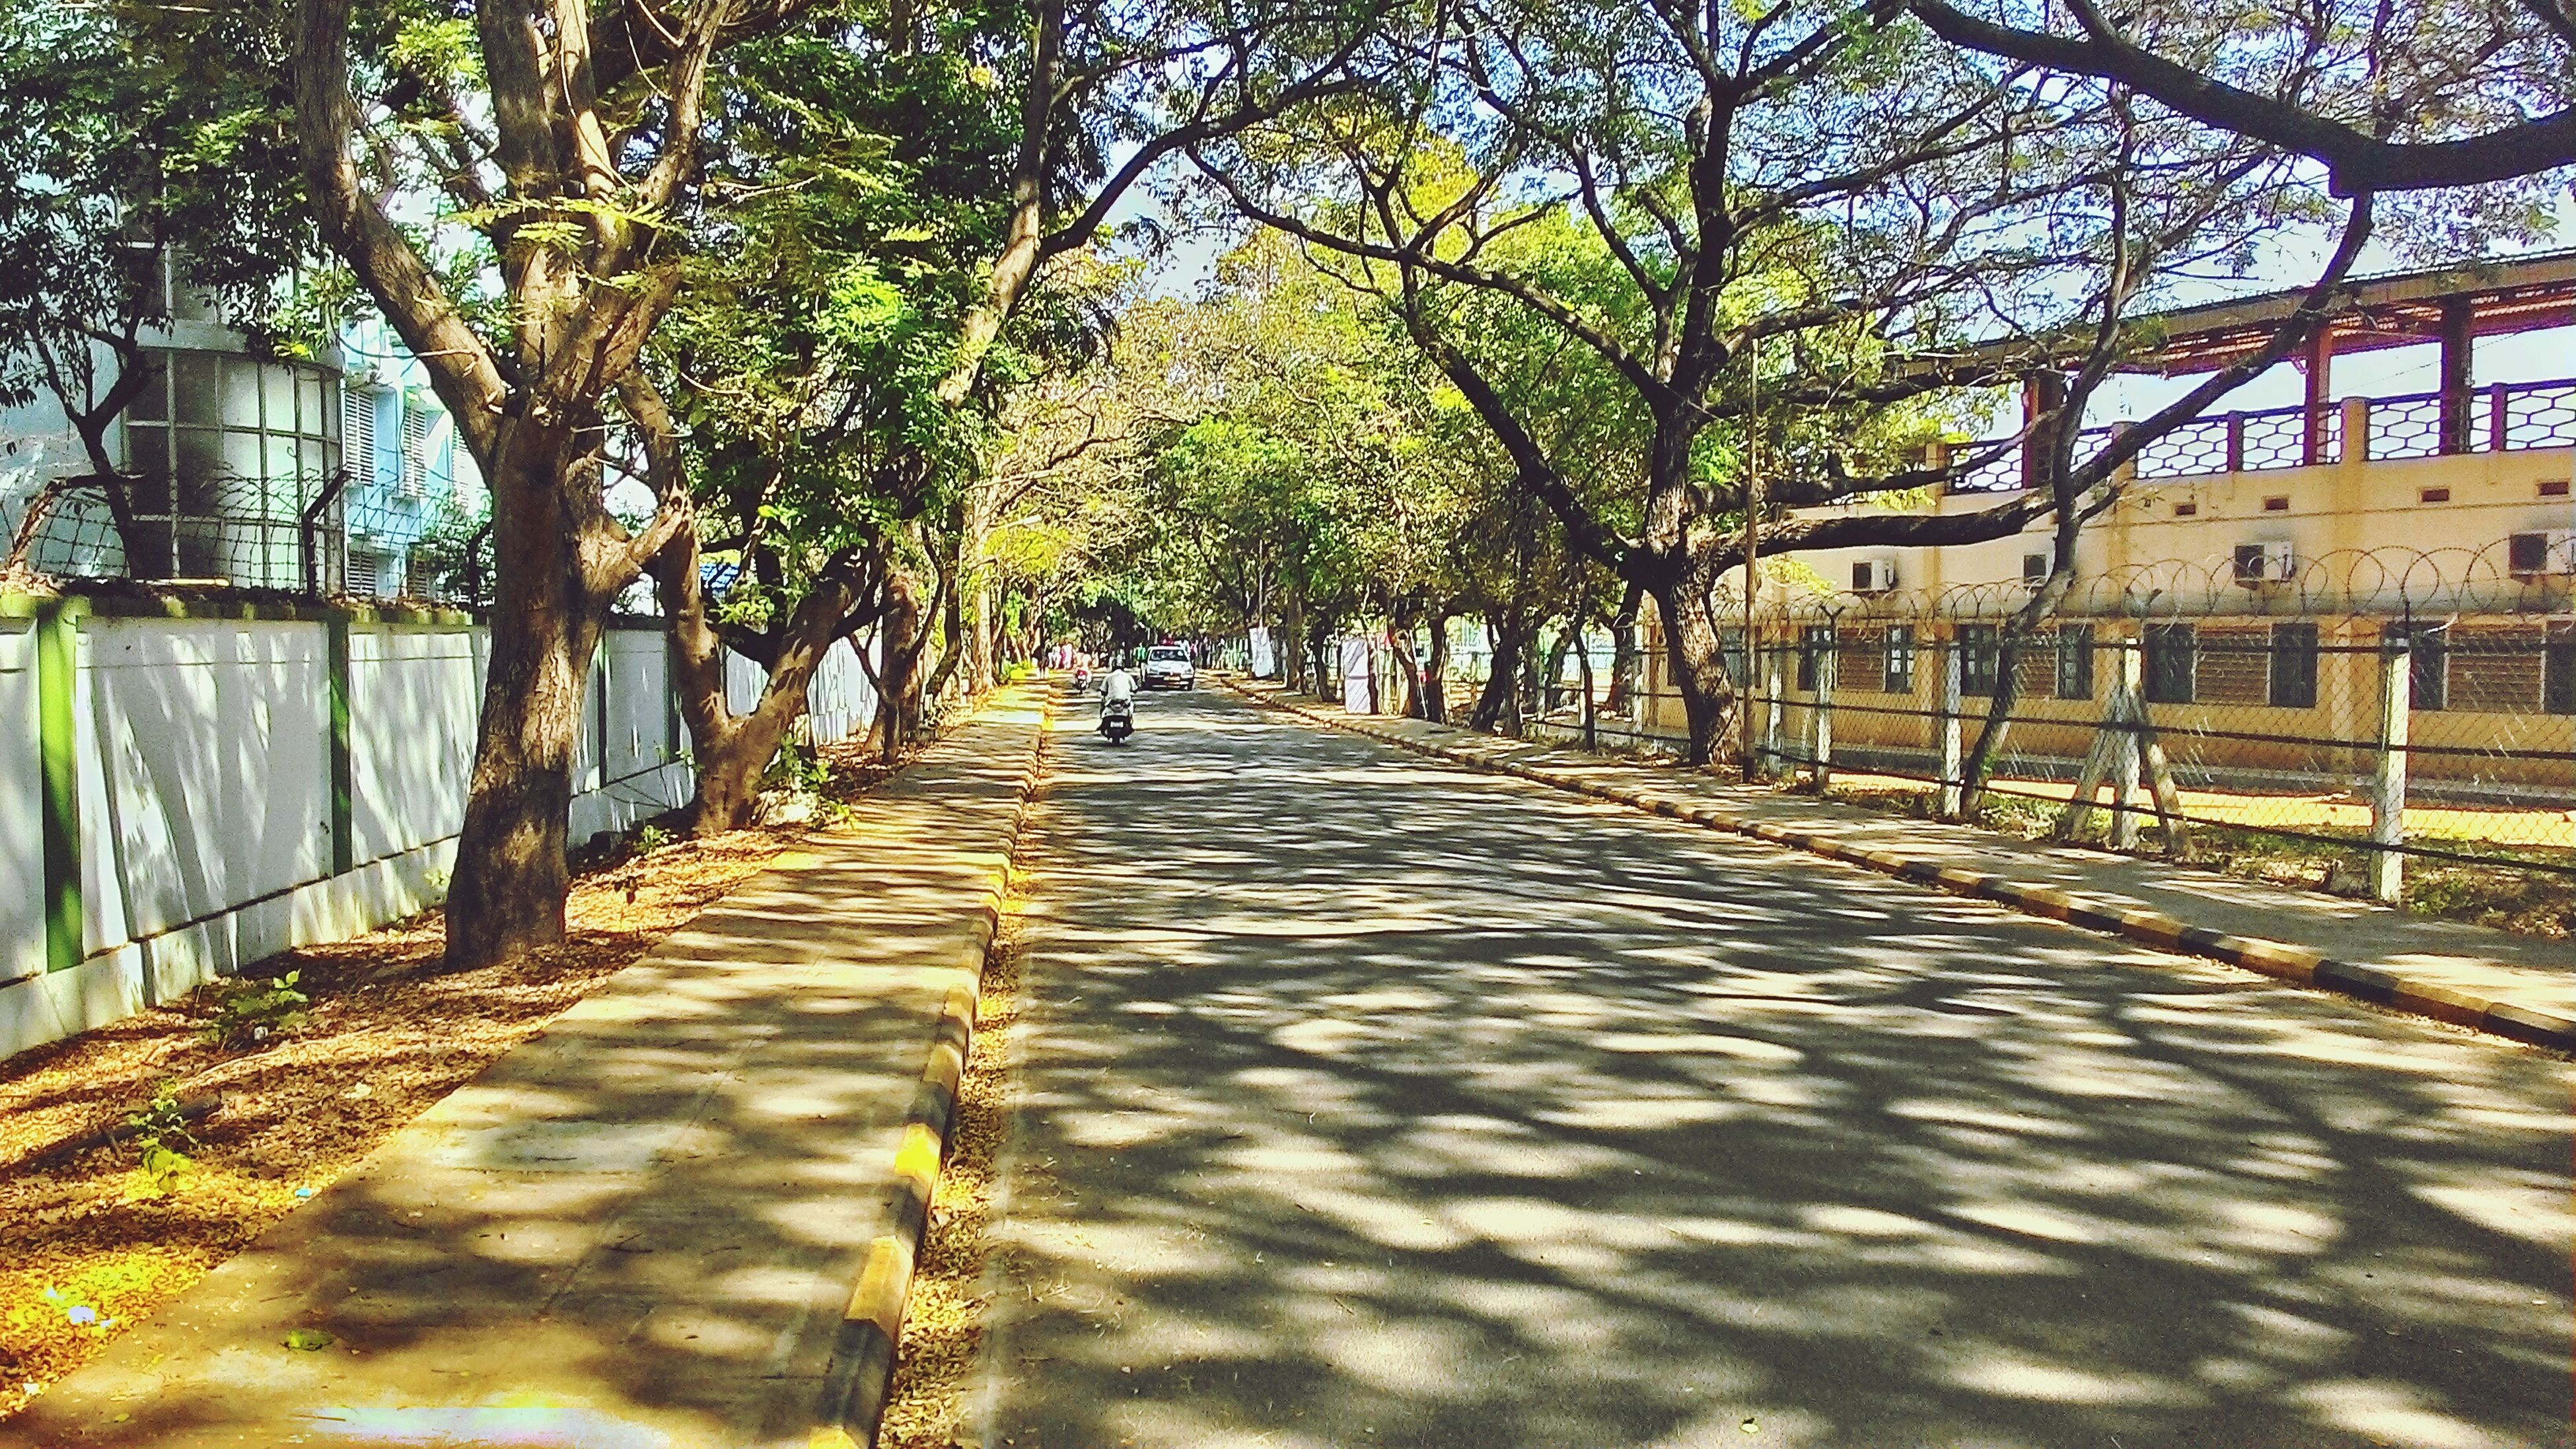 the way forward, tree, diminishing perspective, vanishing point, transportation, footpath, street, built structure, walkway, long, narrow, treelined, pathway, architecture, building exterior, branch, empty, road, sunlight, growth